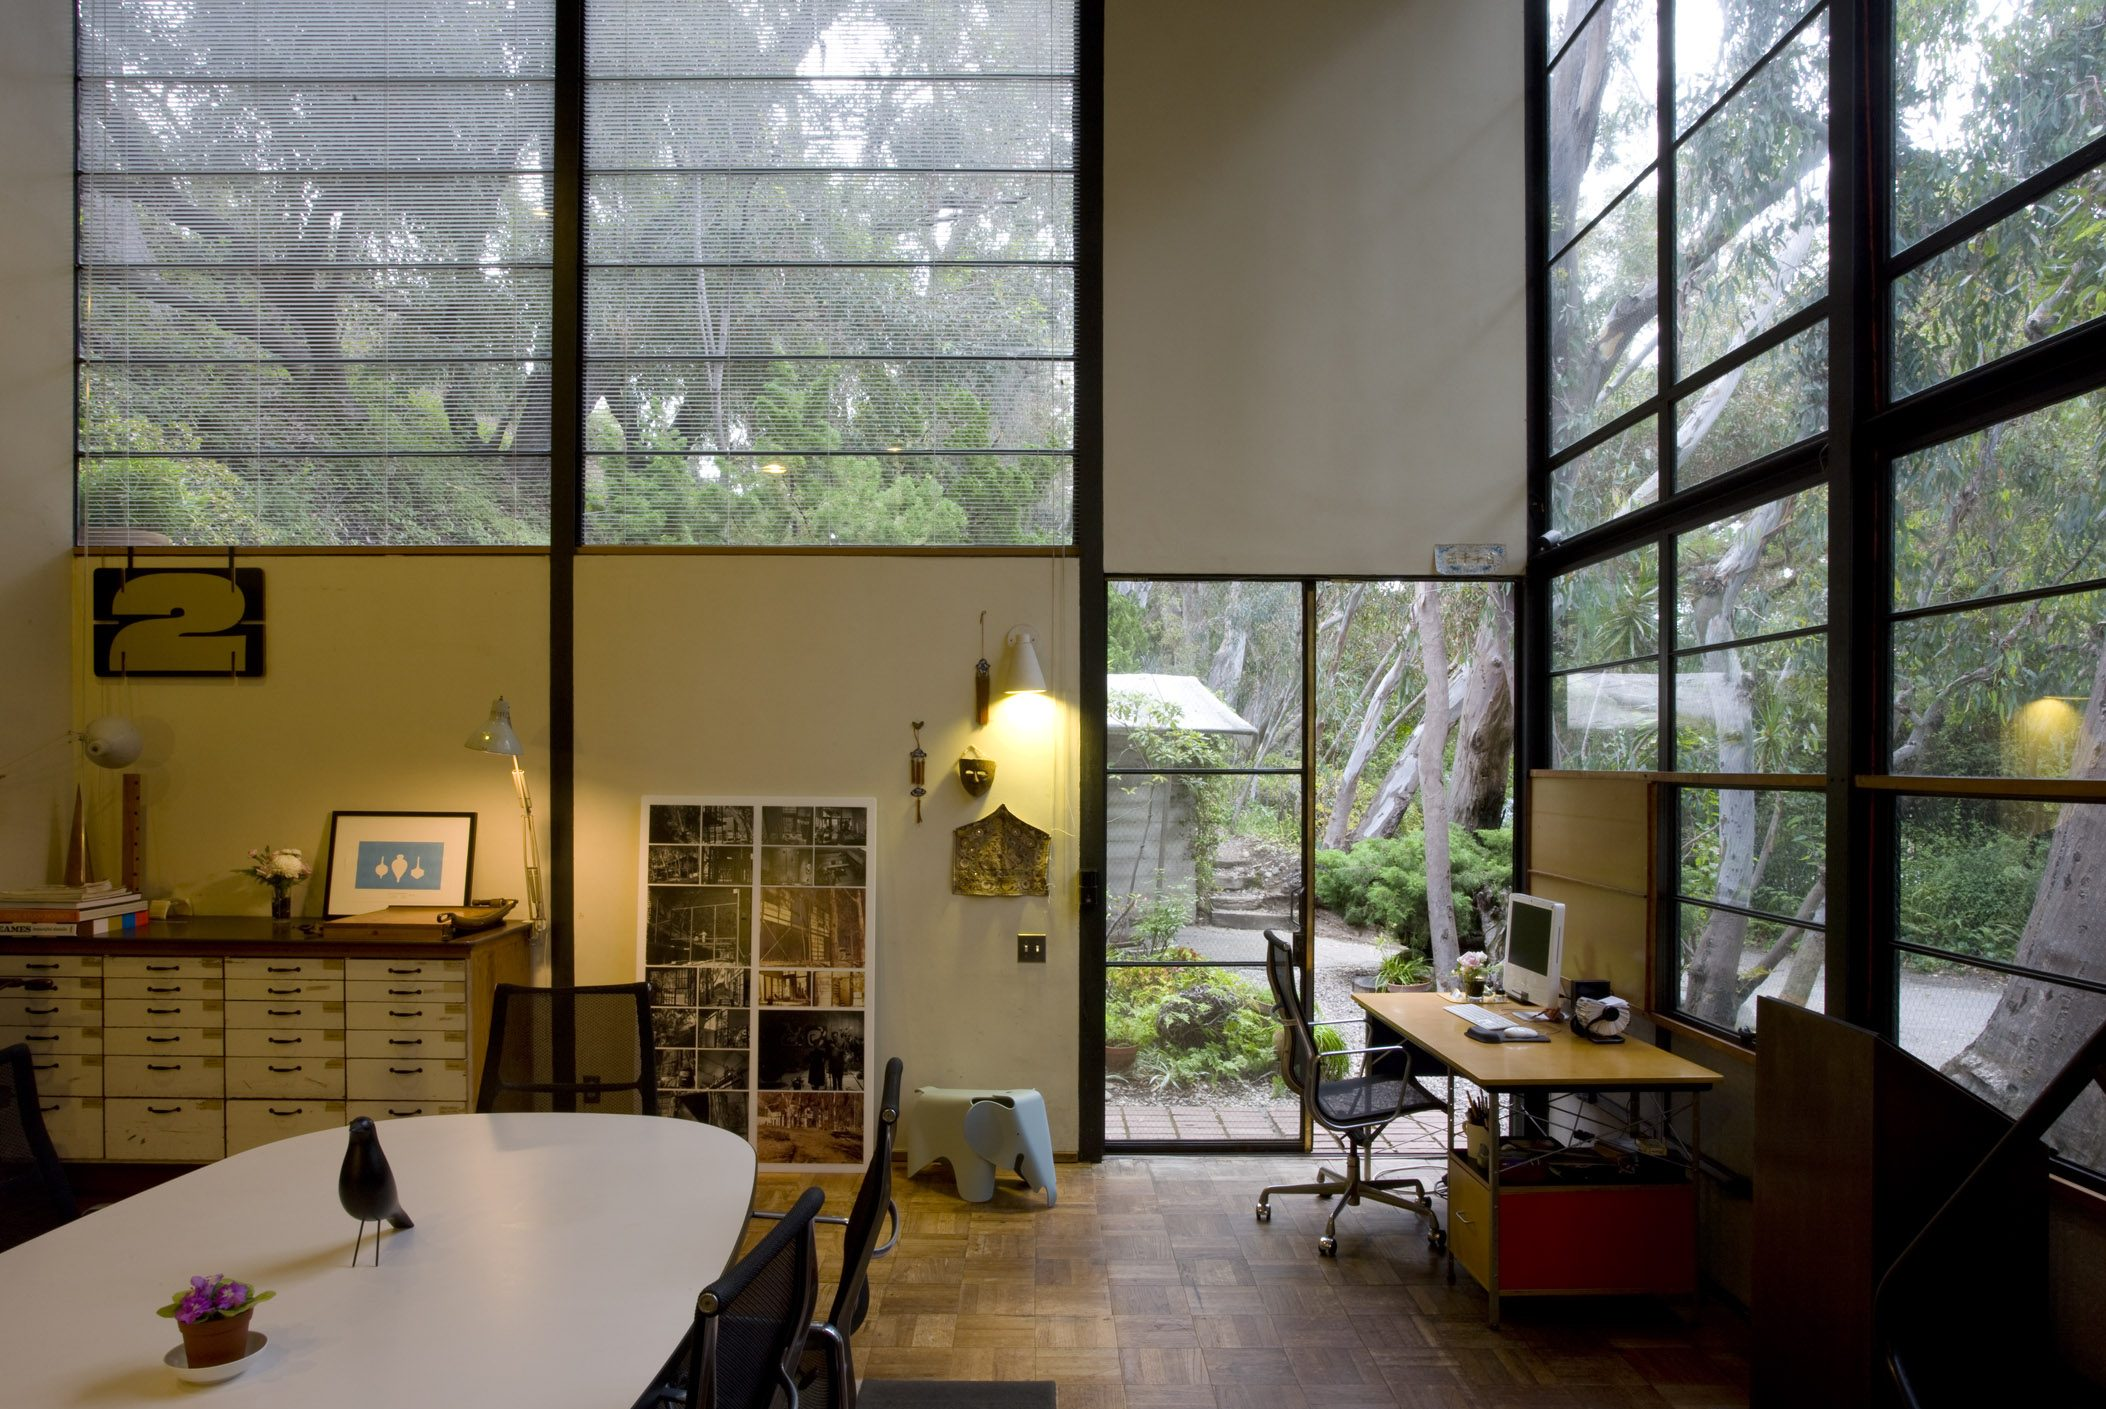 The Eames House Work Space | Photo Credit: Leslie Schwartz and Joshua White